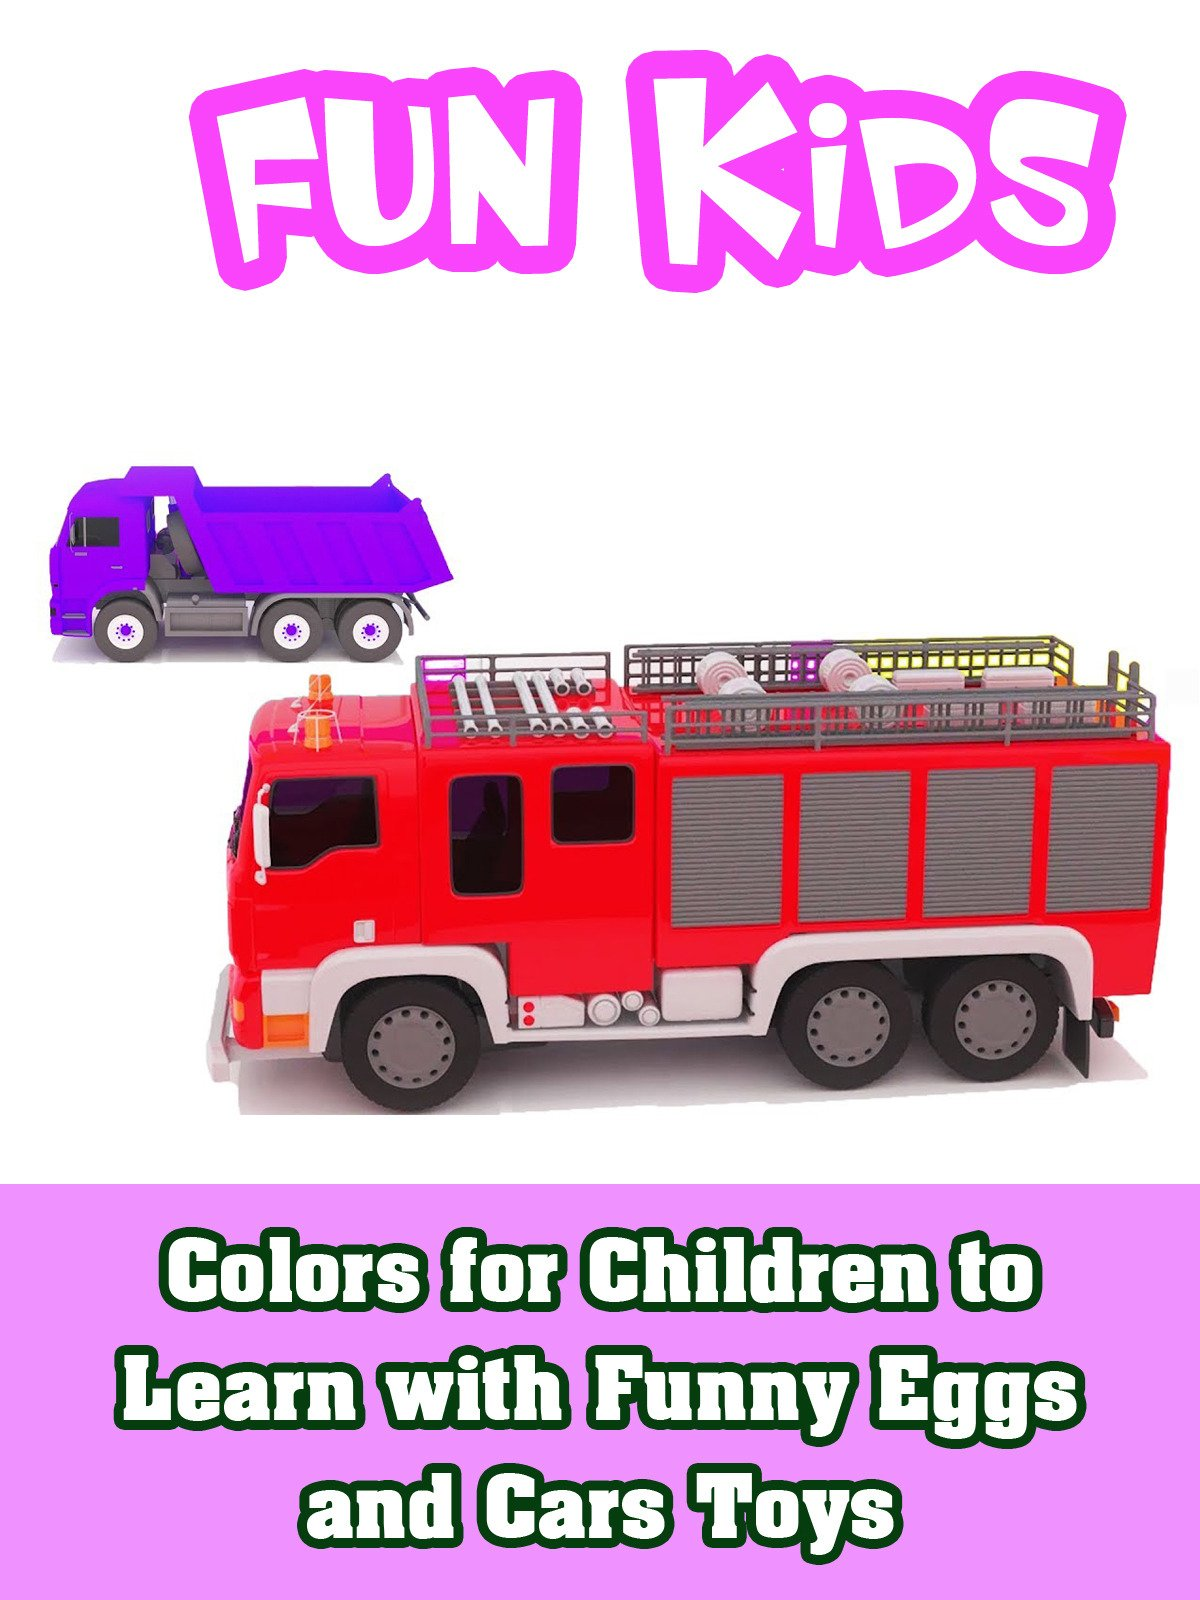 Colors for Children to Learn with Funny Eggs and Cars Toys